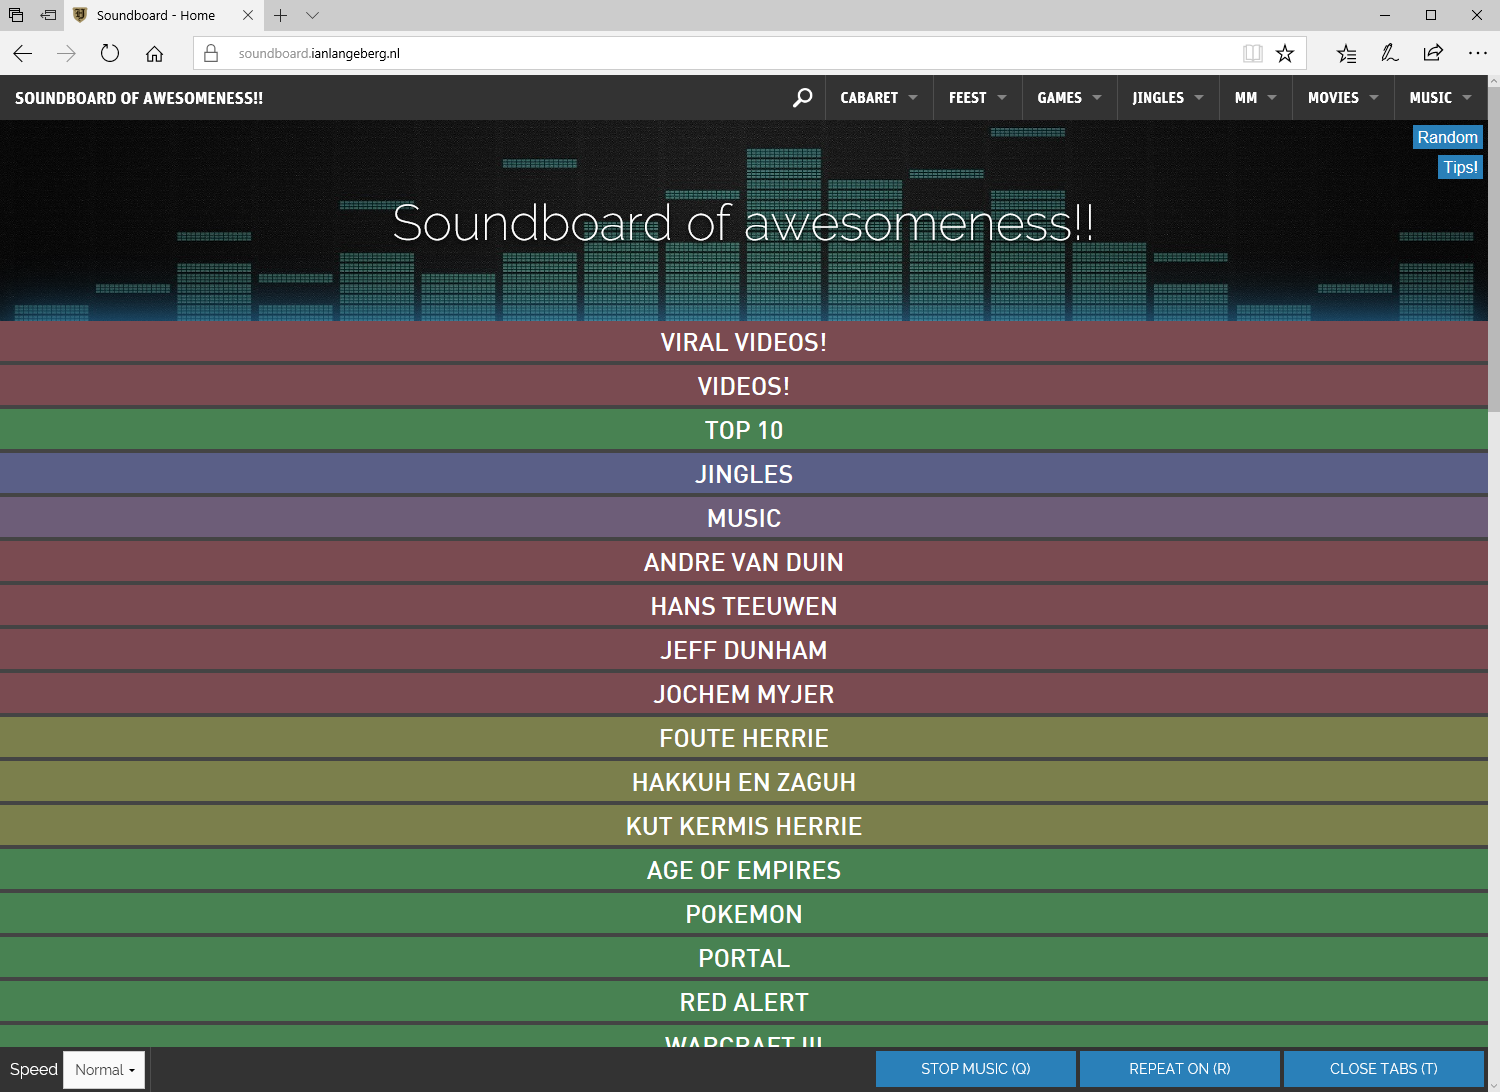 Soundboard of awesomeness!